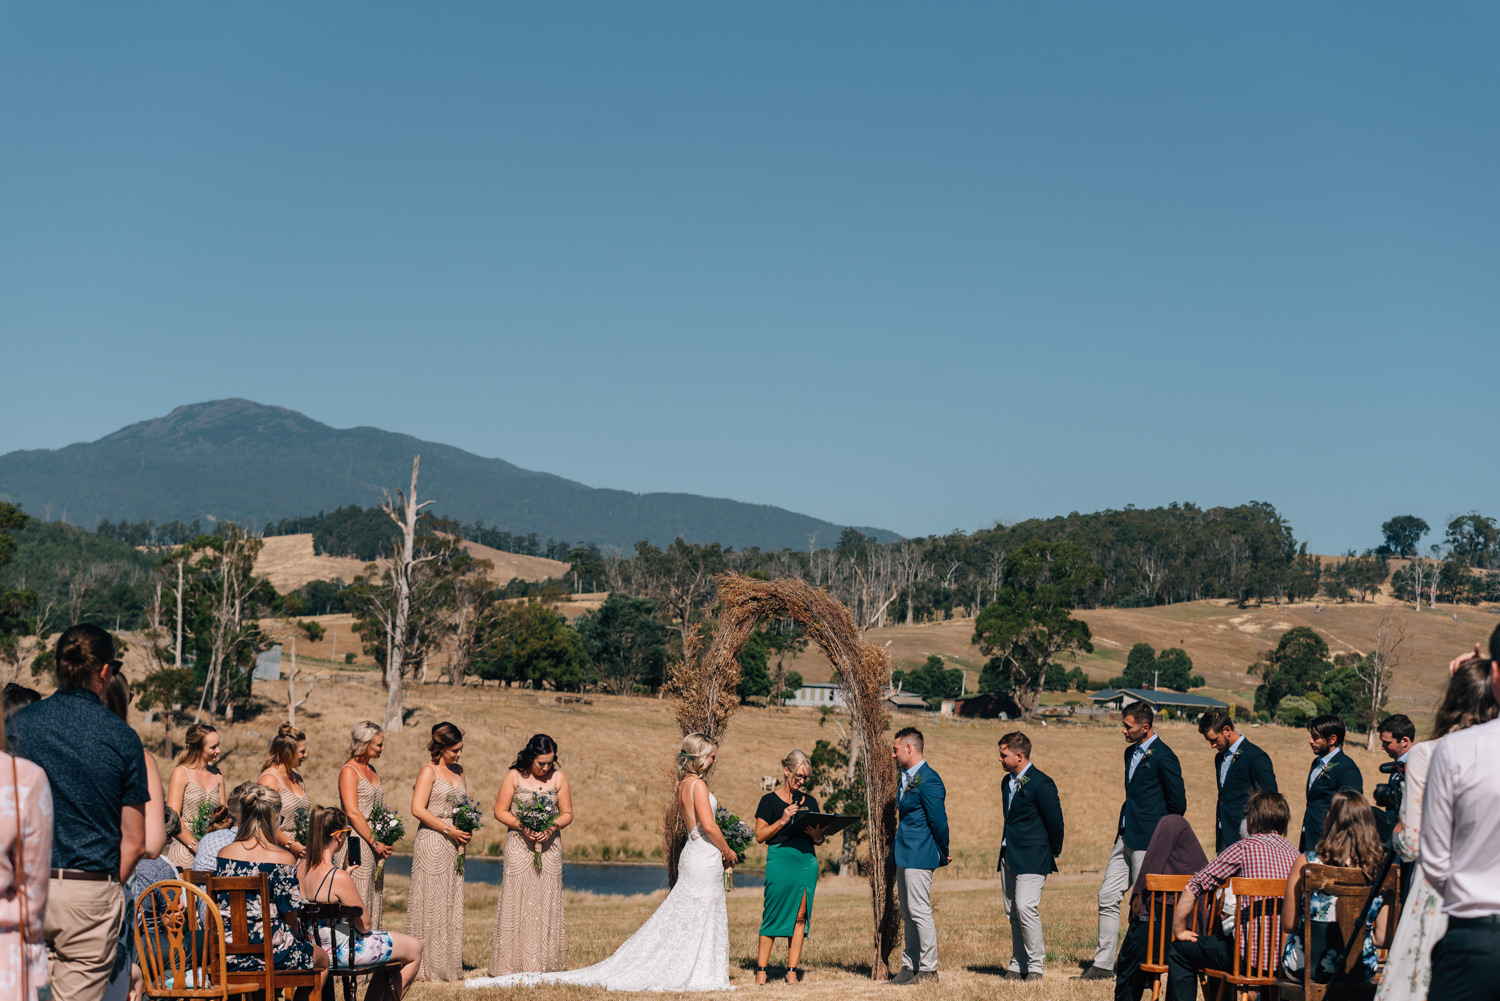 Launceston-Wedding-Photographer-51.jpg